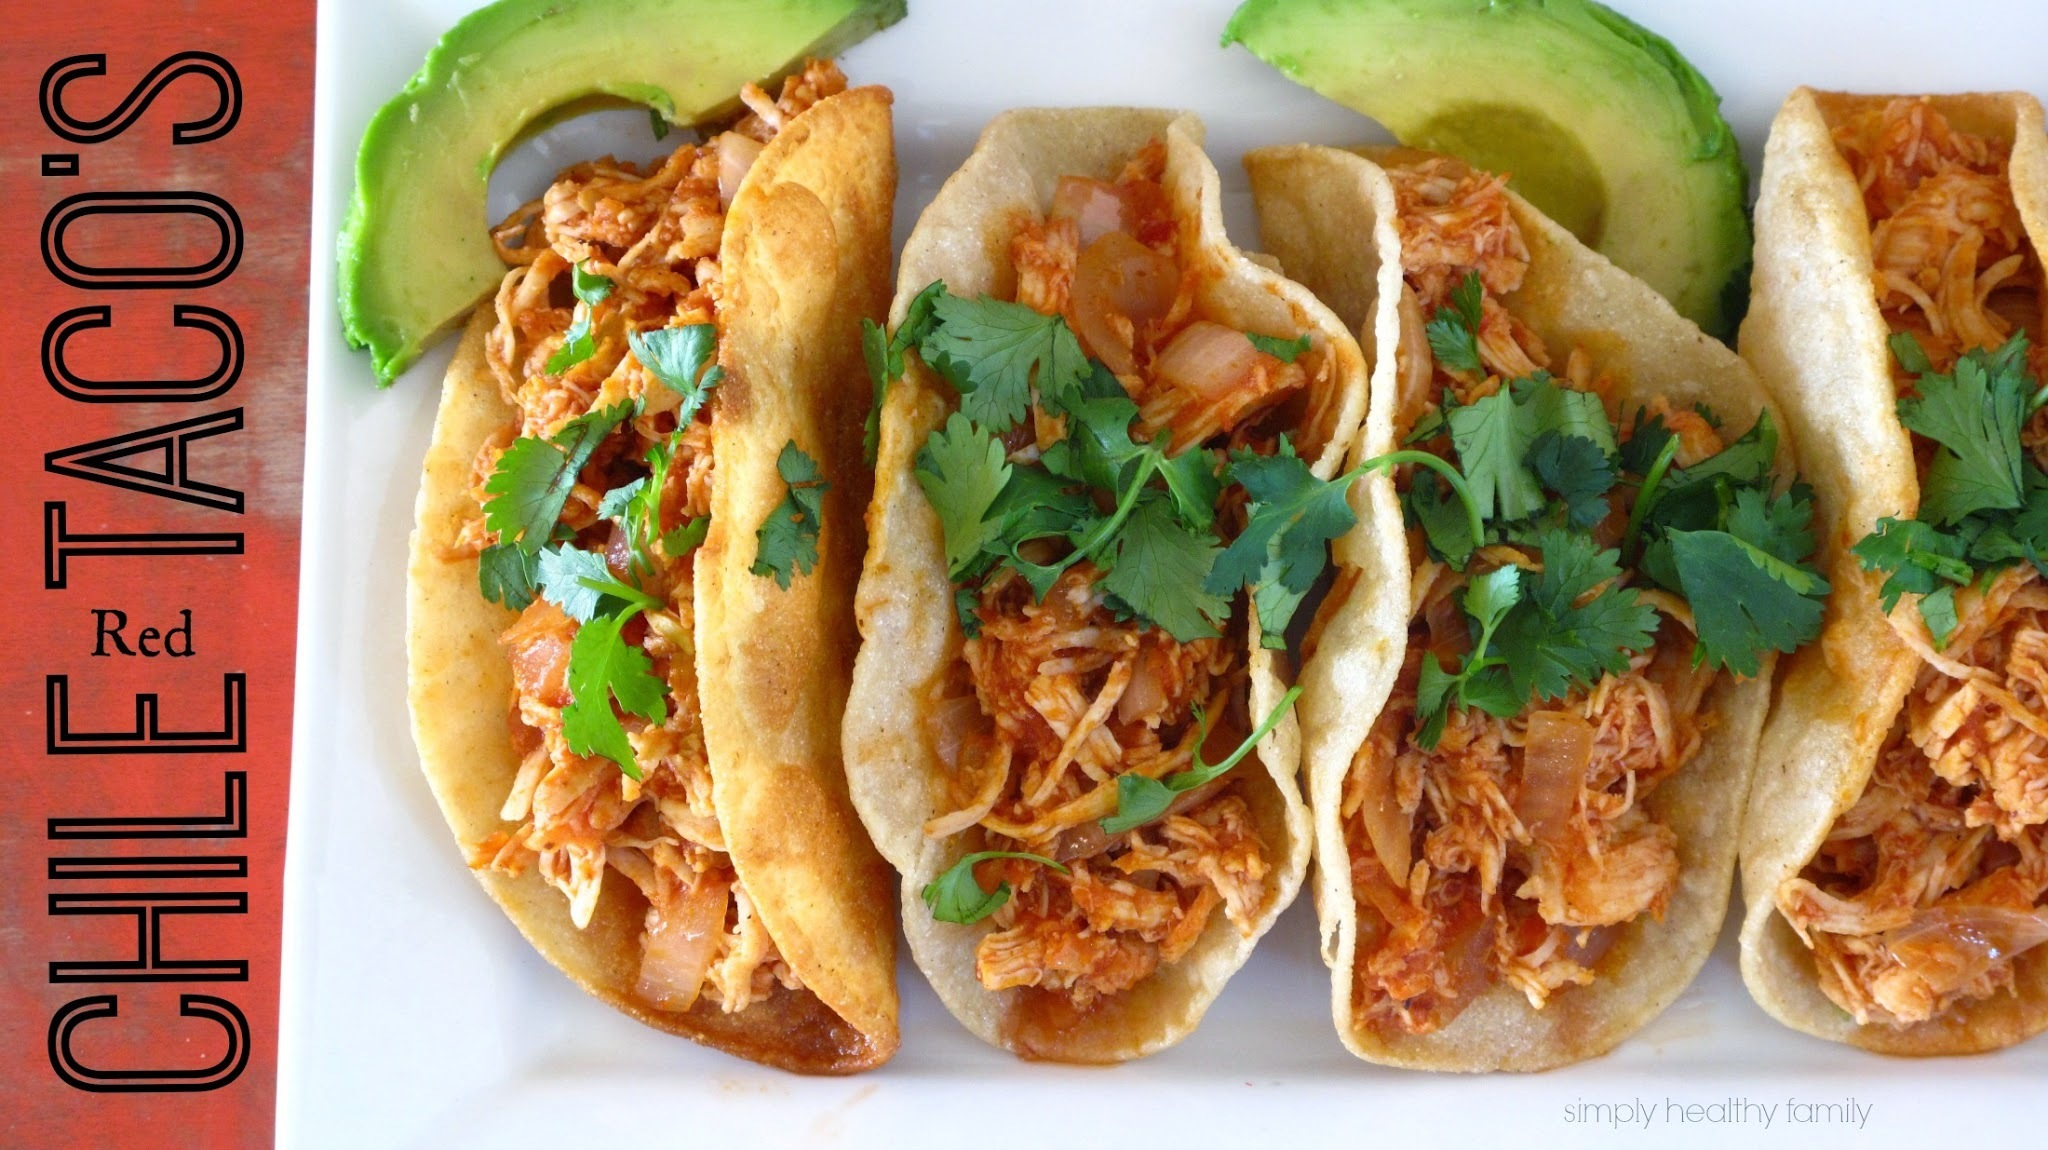 Red Chile Shredded Chicken Tacos. How to win over your man's stomach and steal his heart #SundaySupper